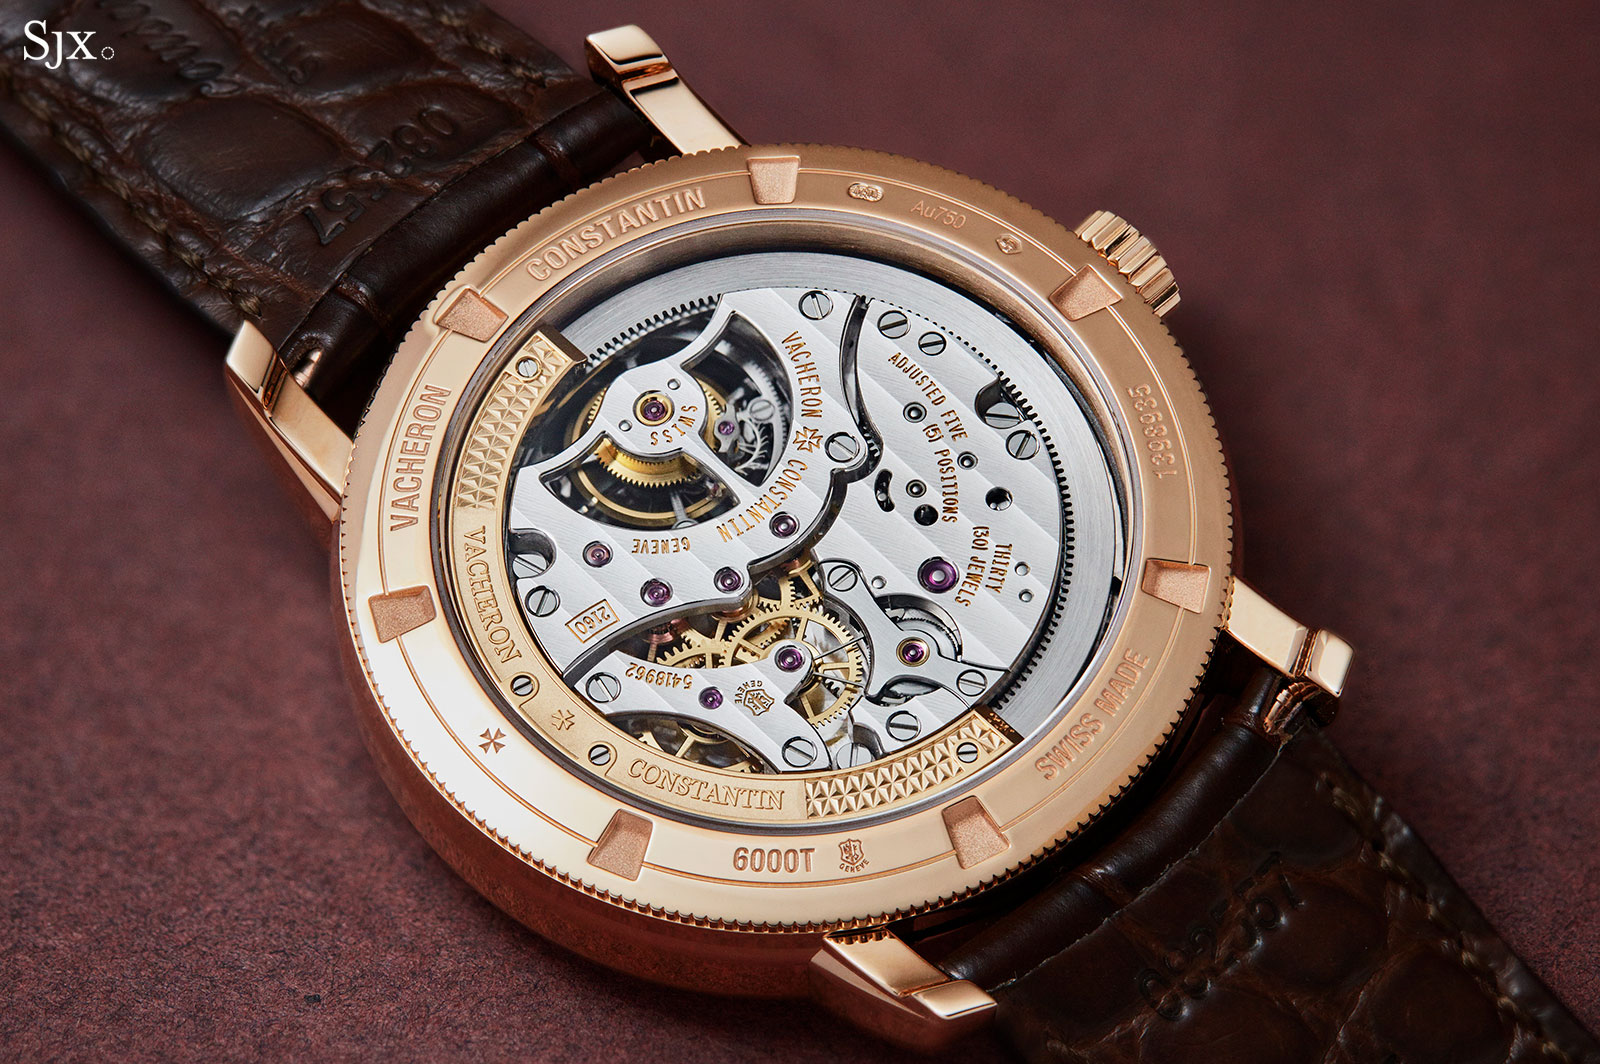 Vacheron Constantin Traditionnelle tourbillon automatic 11